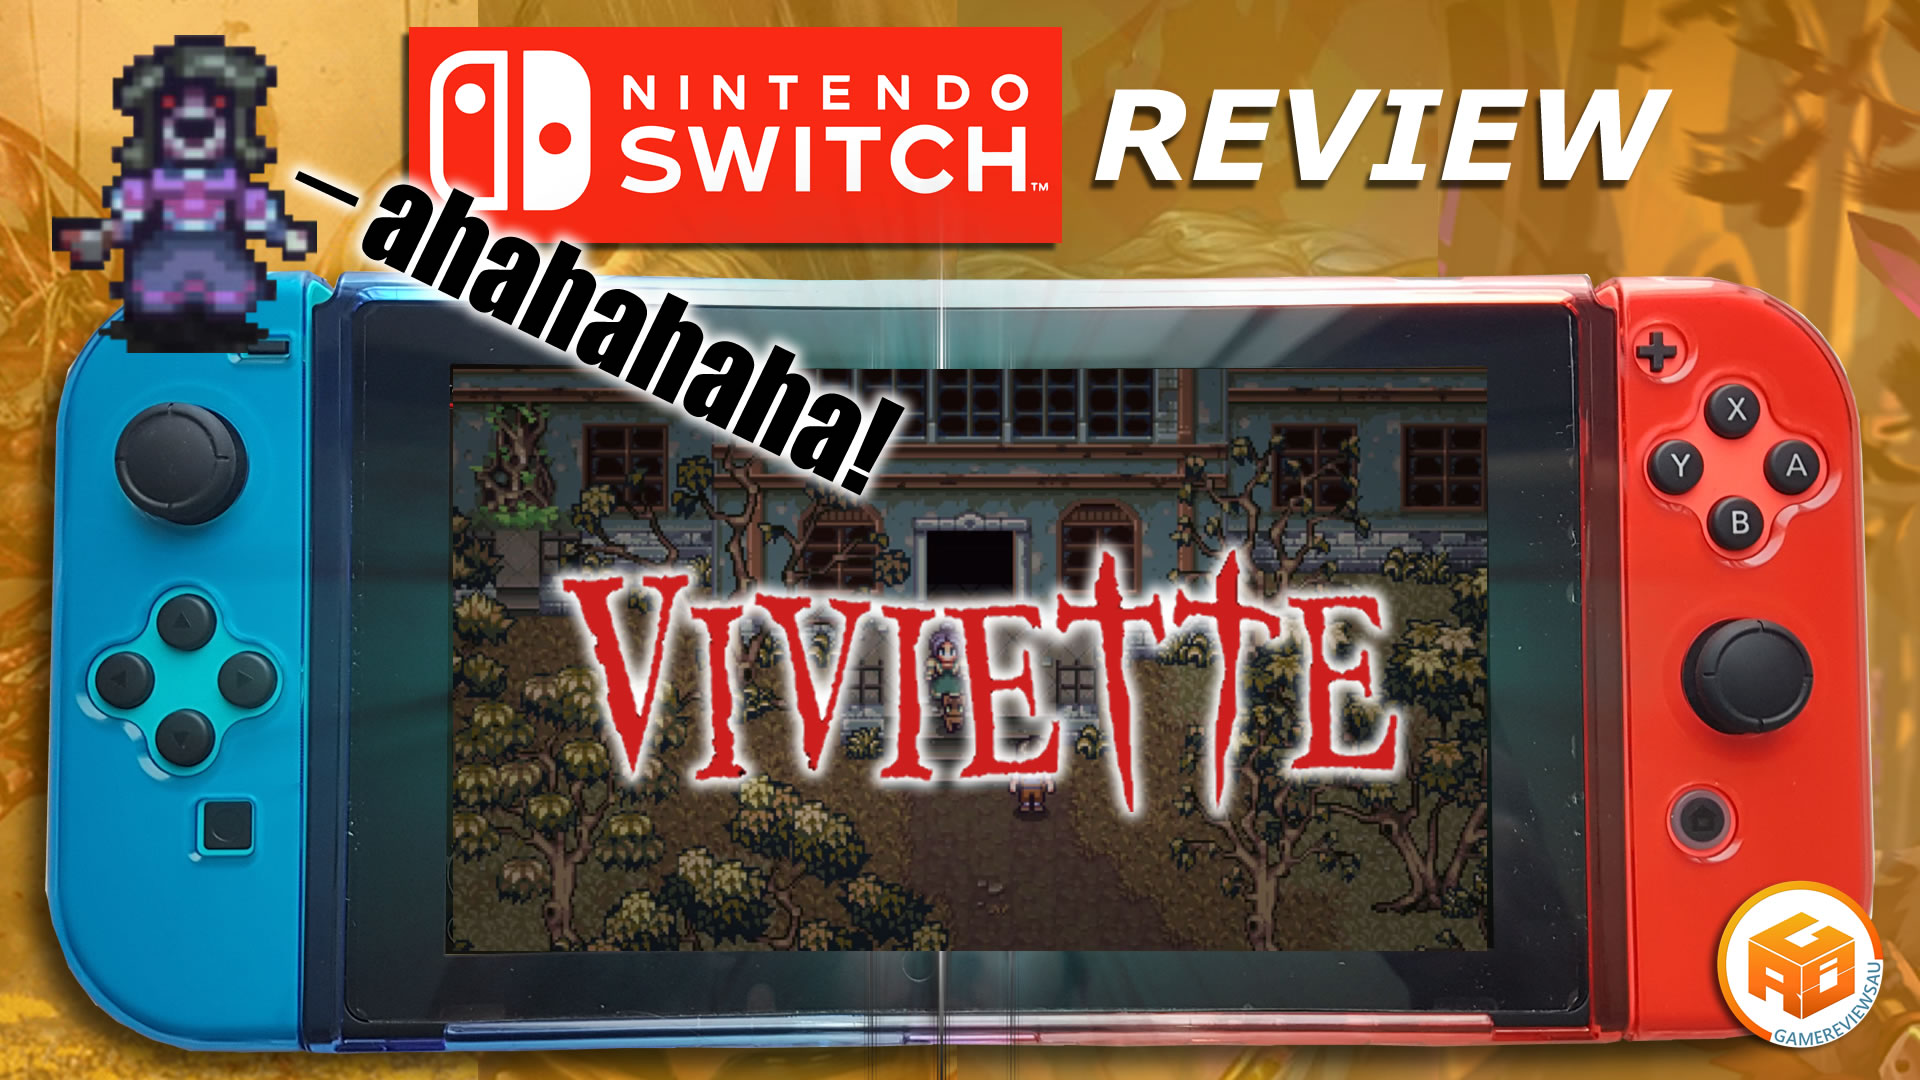 viviette gameplay and review